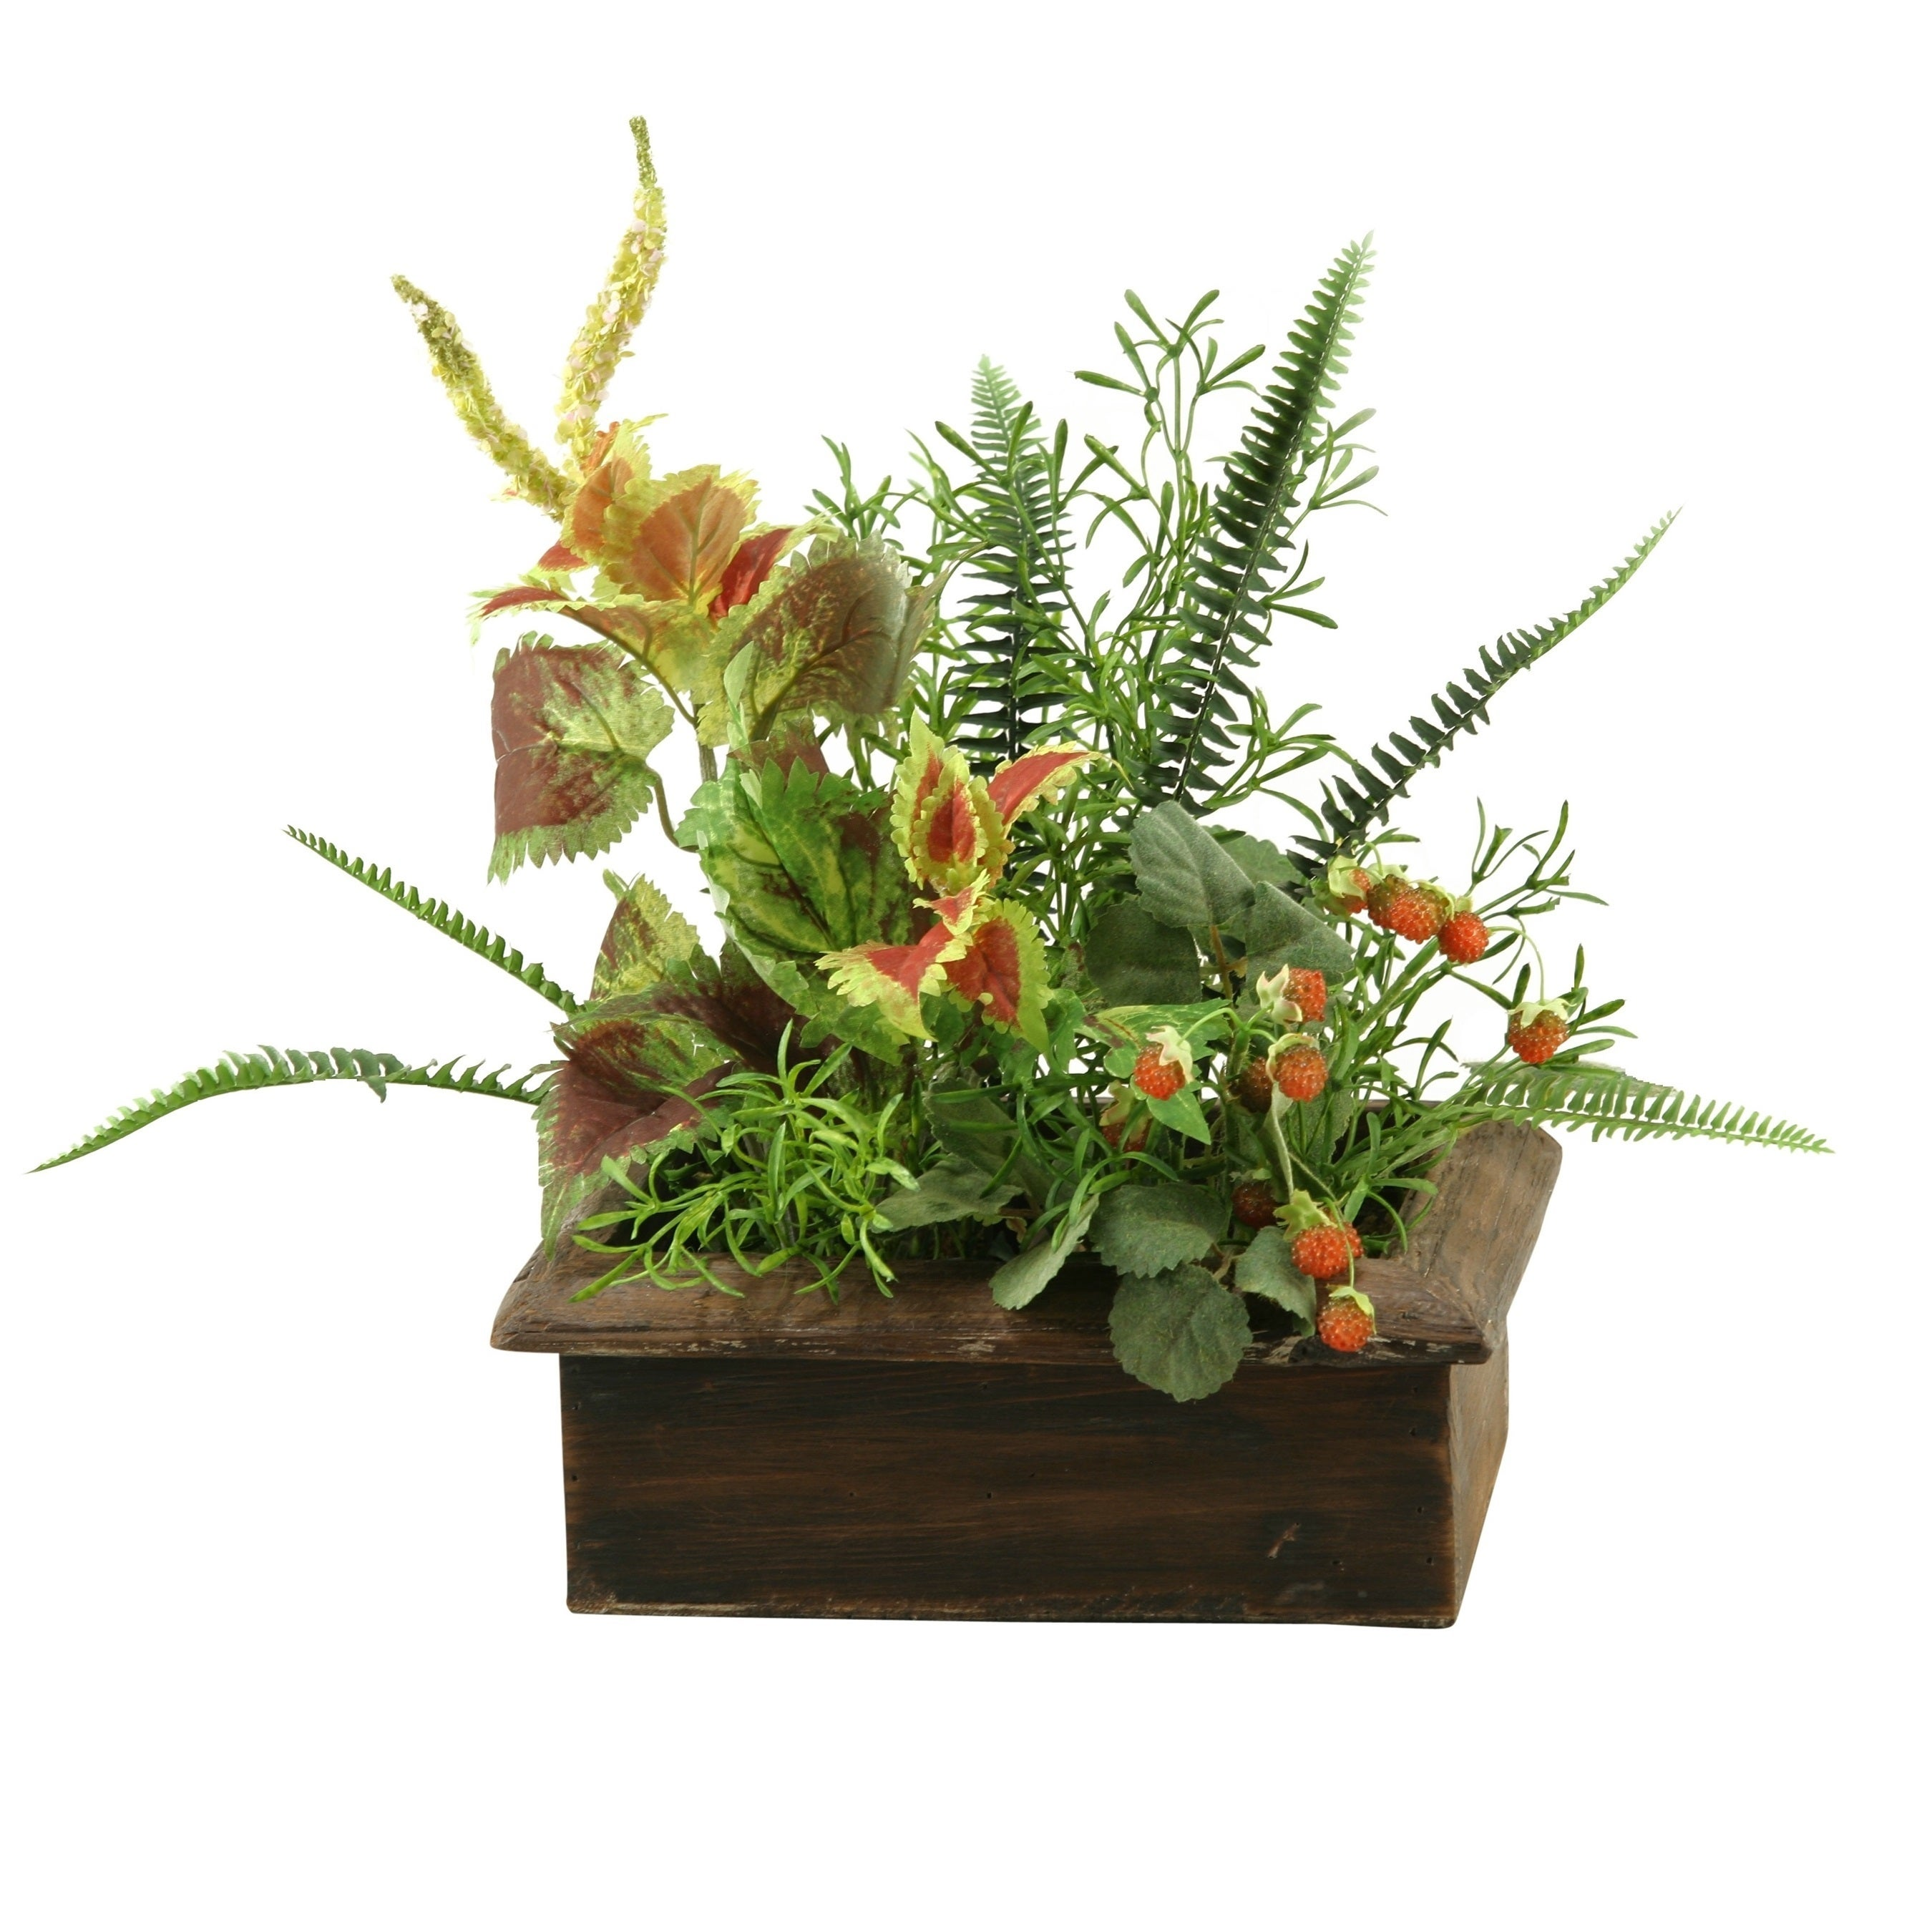 D&W Silks Wild Asparagus with Mixed Greenery in Rectangle Wood Planter Box (Planter)